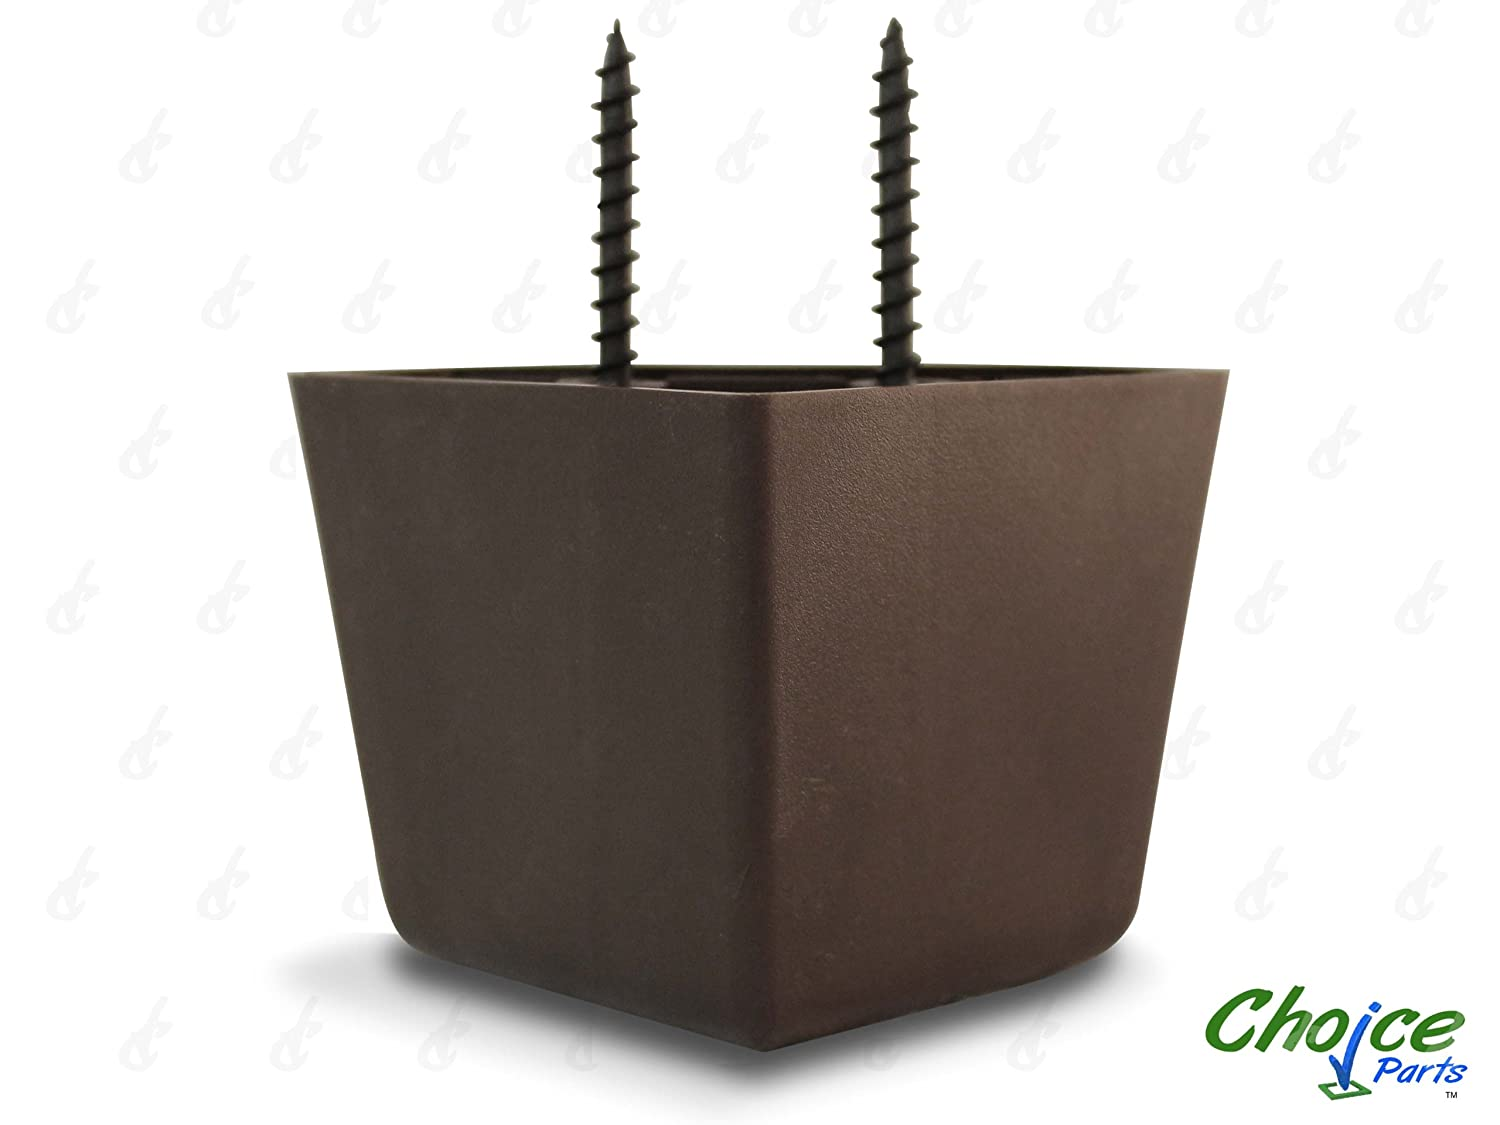 Choice Parts 2 Inch Tall Triangle Walnut Brown Plastic Sofa Legs Pack of 4 Replacement Feet 650 Triangle Sides Measure 6cm X 6cm X 8.5cm